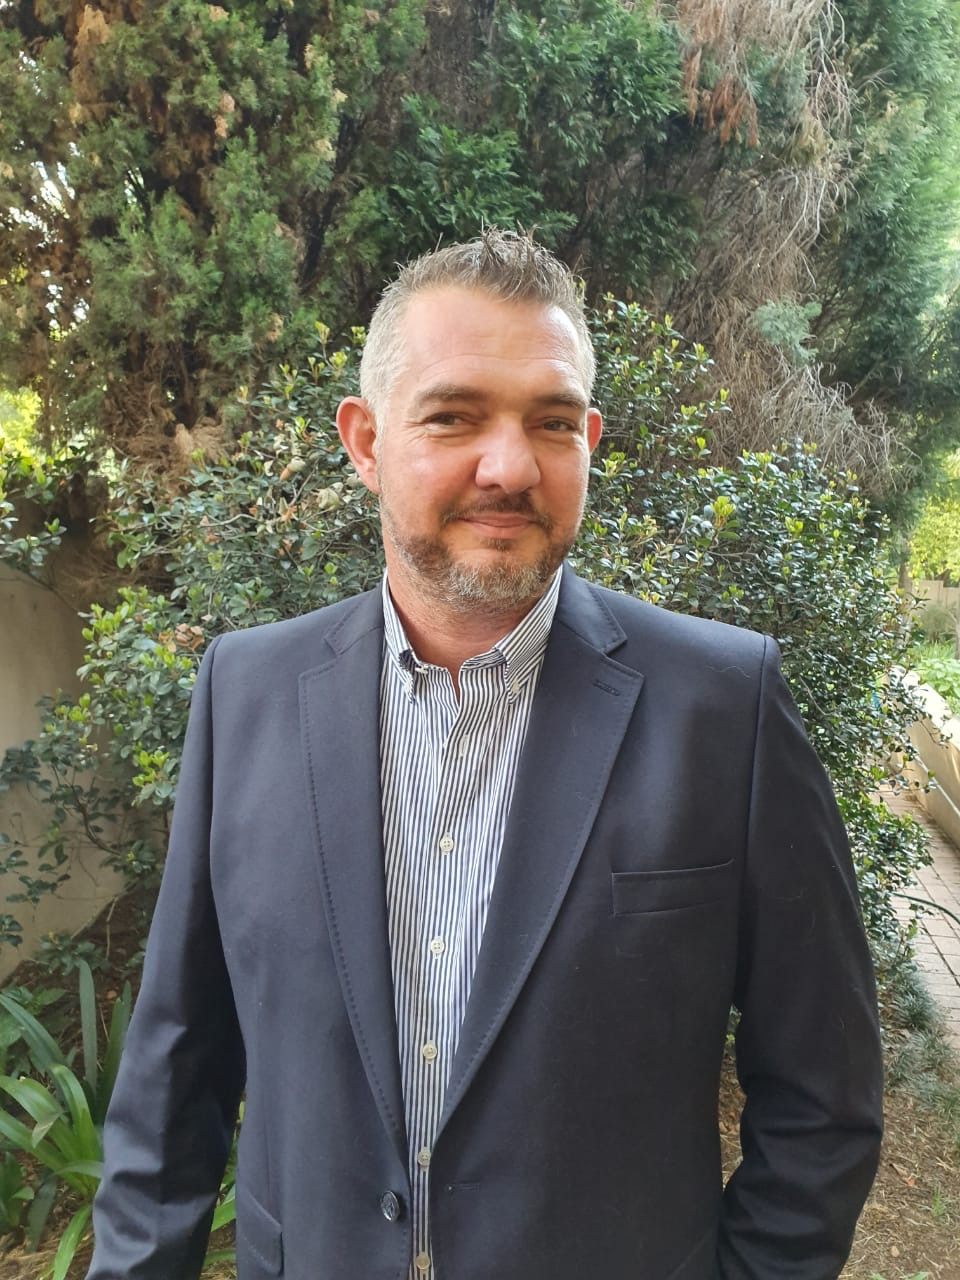 Project Director Jason Aucamp joins Commit Works' mission to improve operational planning in Africa